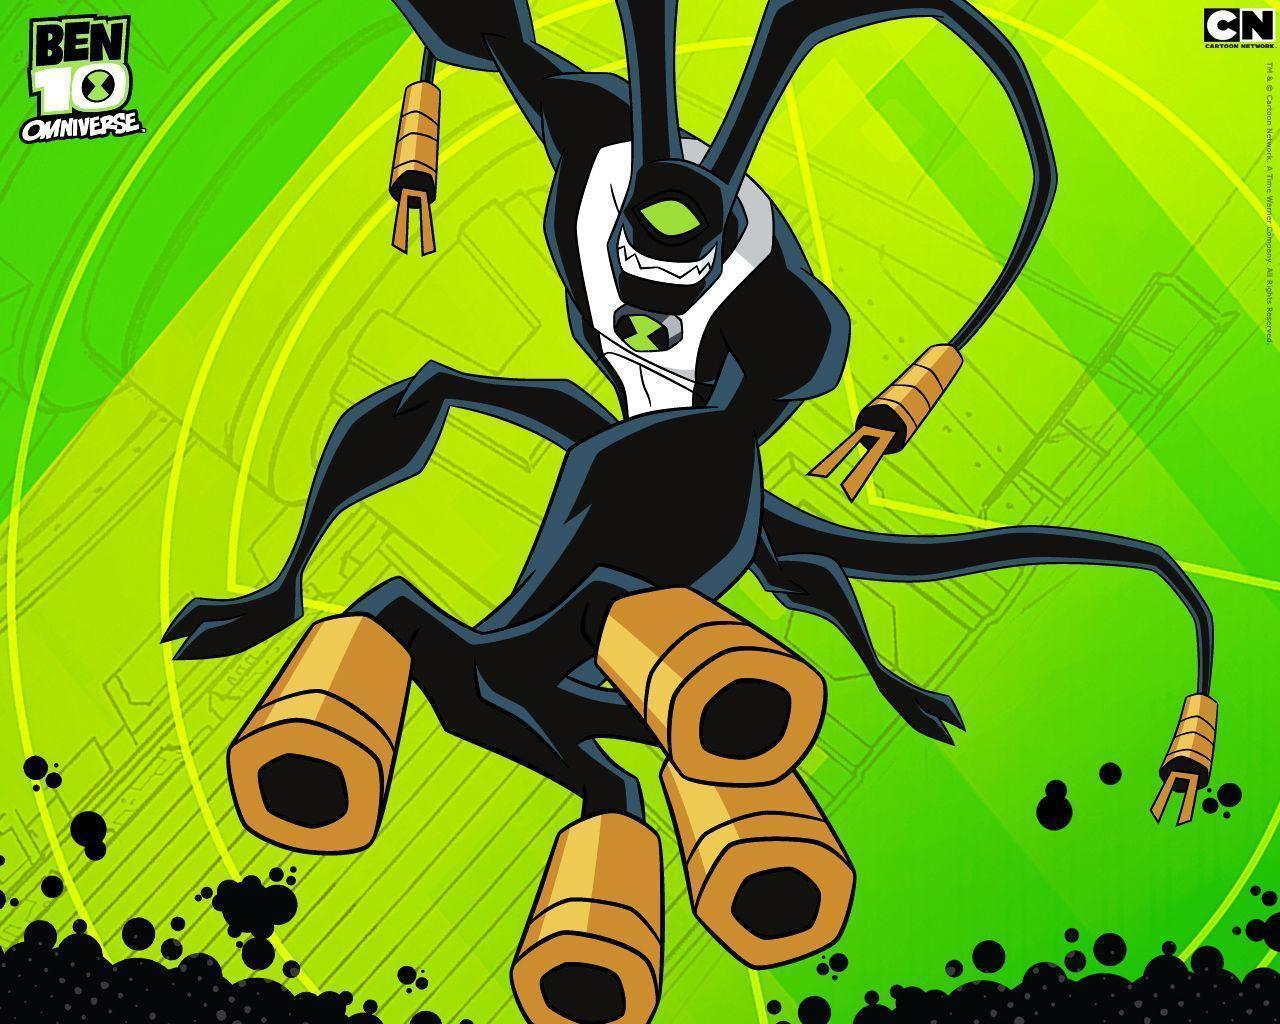 Ben 10 Wallpapers - Wallpaper Cave